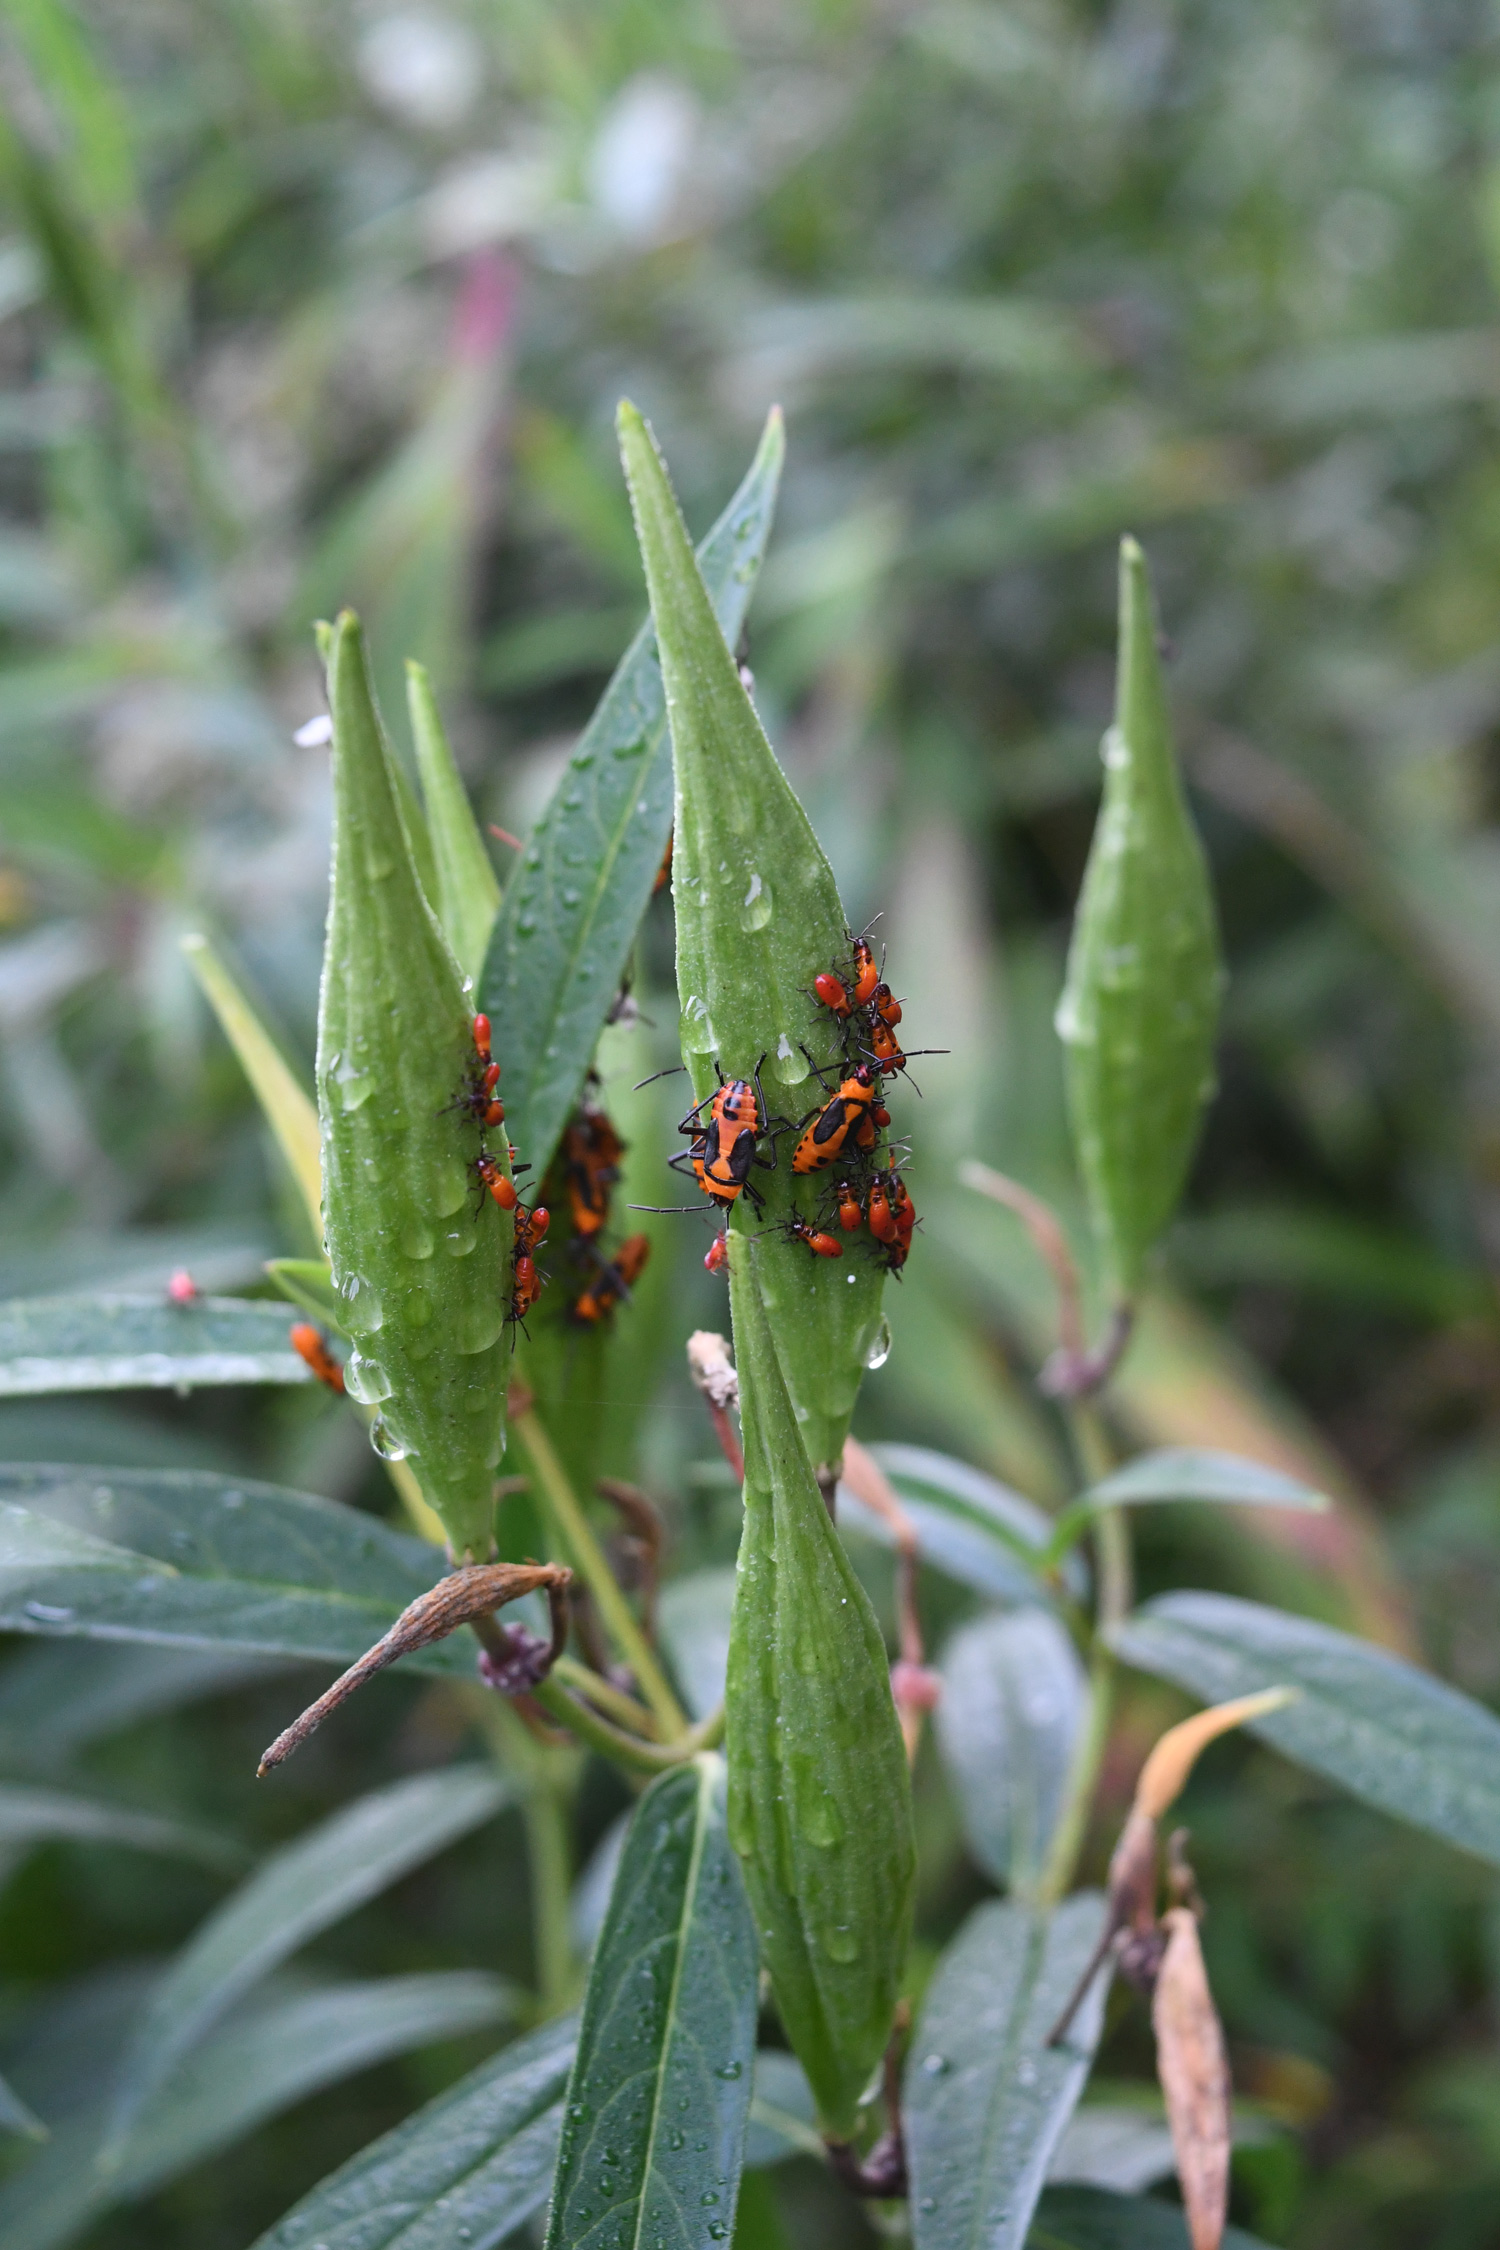 Red beetles on milkweed pod